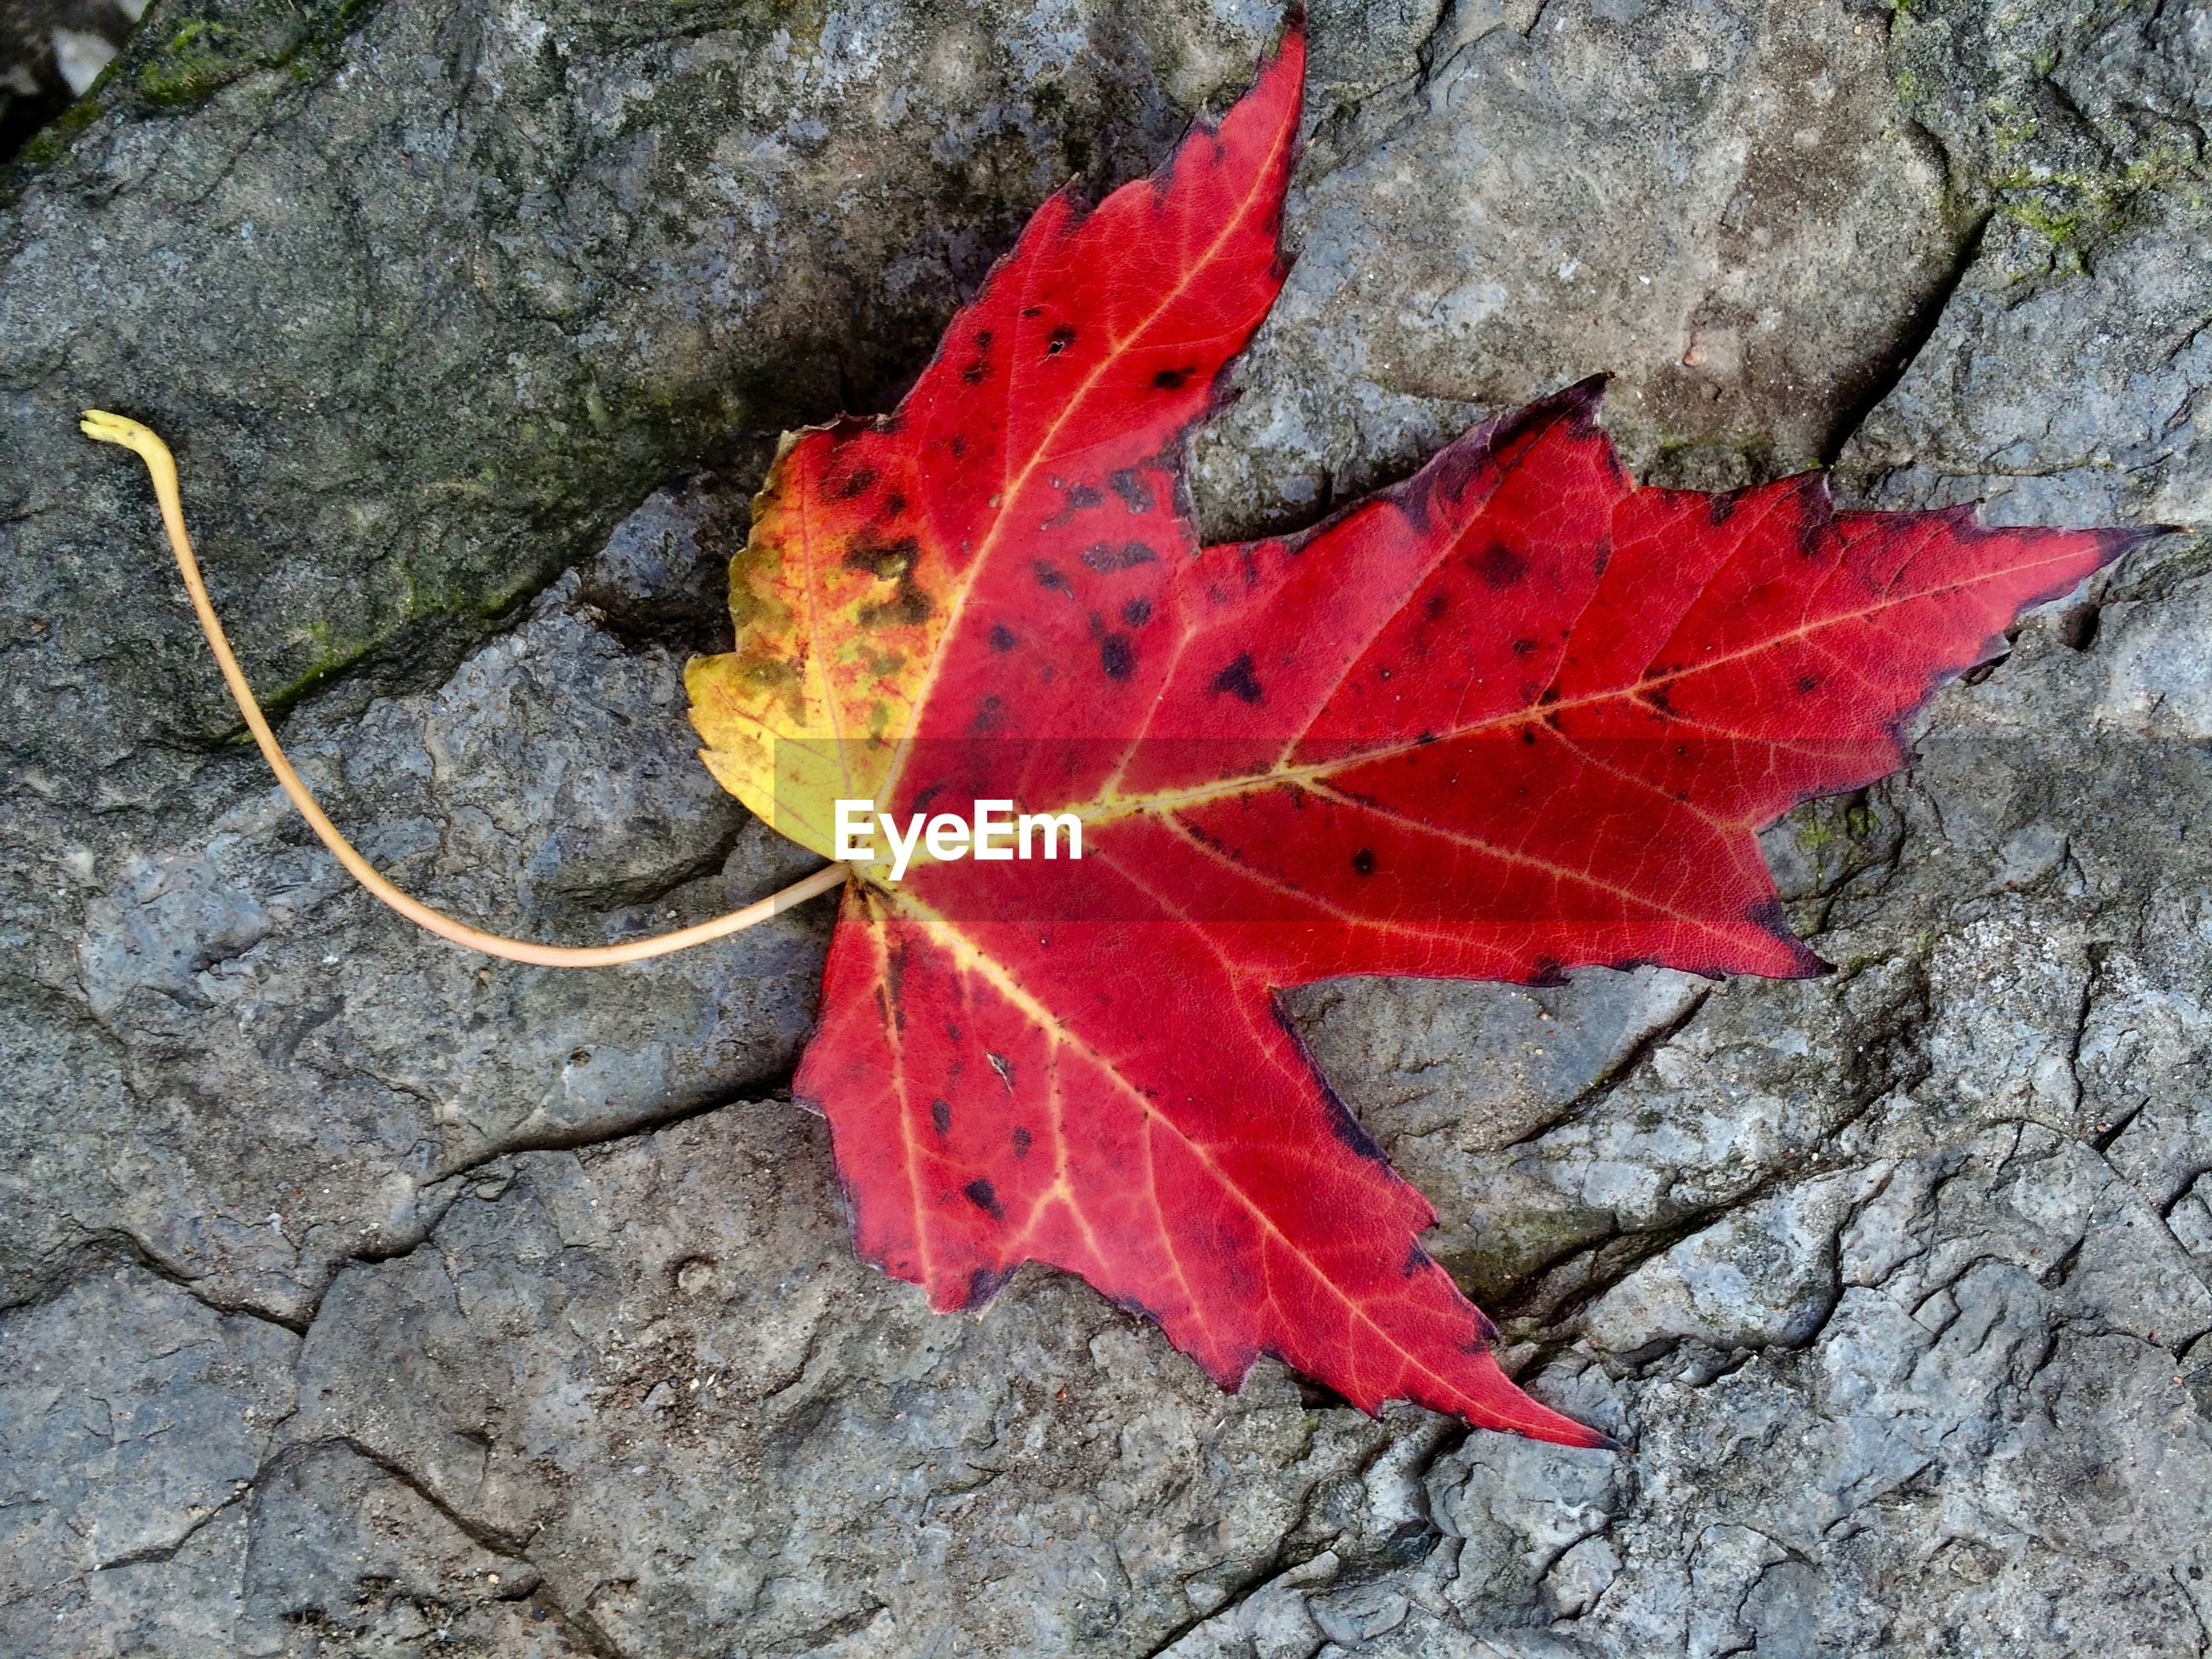 CLOSE-UP OF FALLEN MAPLE LEAF ON AUTUMN LEAVES